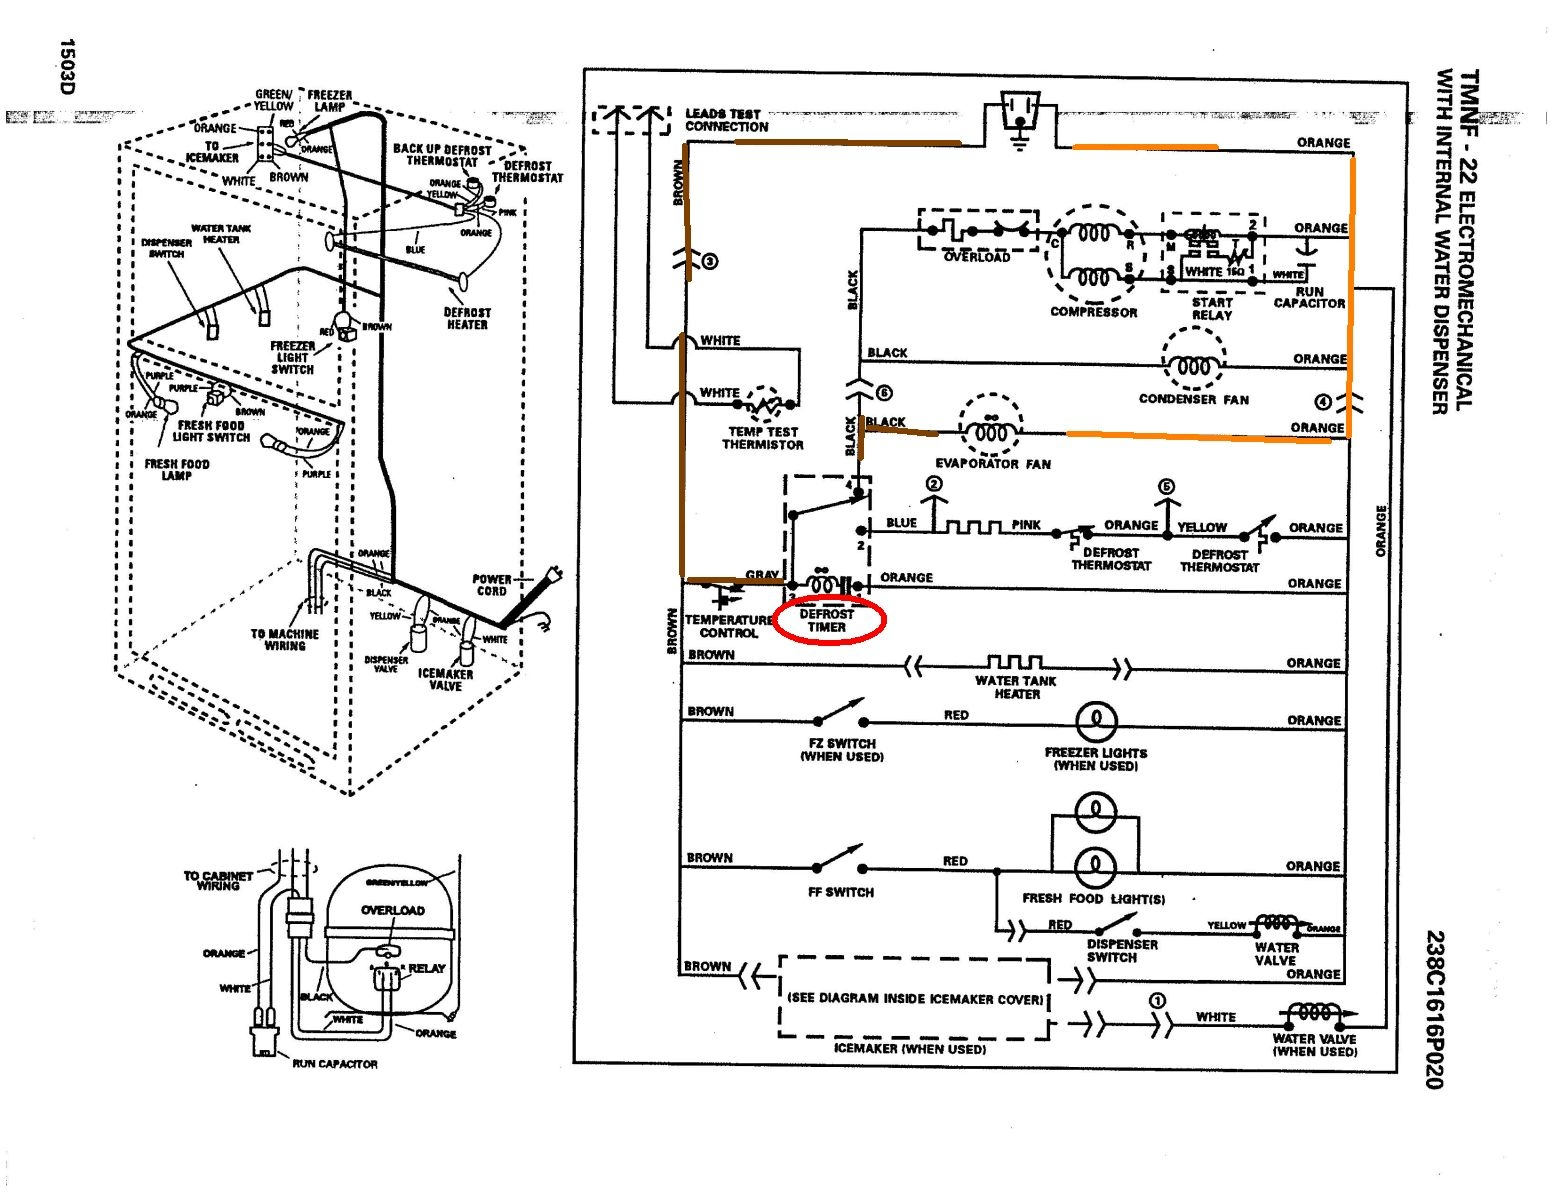 Ge Refrigerator Schematic - Home Wiring Diagrams on